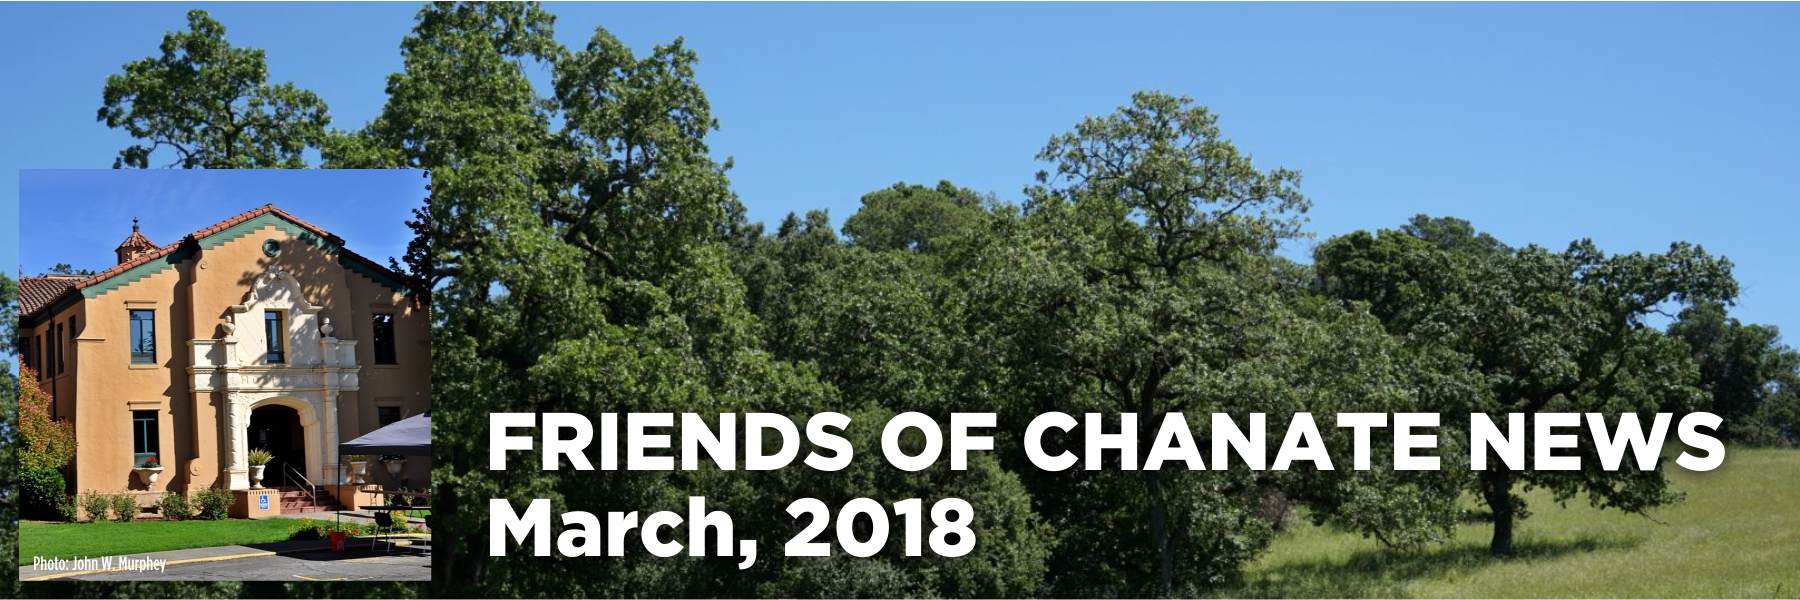 Thanks to you and our many other generous supporters, on March 14, 2018 Friends of Chanate met a key legal benchmark; we completed our deposit of $35,000 with Sonoma County to pay for the Administrative Record.   Equally important have been the many volunteer hours devoted to research, documentation and spreading the word. Thank you, all!    We will continue to press forward because it is unacceptable that the County has given a gift of public funds to their favored developer. County taxpayers deserve a full public process before this valuable 82-acre property is given away for only $6-12 million dollars.   Next the County will prepare the Administrative Record (which consists of all the documents that will be used to prove our case) and submit it to the court. However, first the County must address our significant comments about their attempt to include irrelevant and duplicative documents in the Administrative Record. By our count, over 1/3 of their proposed record consists of documents that are irrelevant and/or duplicative. They've also left out a number of important documents, and we will be demanding that those documents be included in the Record.  If necessary, our attorney will return to court to demand that the Administrative Record appropriately contain only the documents necessary for this lawsuit, and if possible, further reduce the cost. There continues to be no charge to Friends of Chanate for this representation, as our attorney is donating her fees on the matter of the Administrative Record.  After the Administrative Record situation has been resolved, we will file our first legal brief with the Court. This need not be an endless process. The trial is now scheduled for July, and we look forward to a clear resolution on the merits of our case.  Although we have been able to thwart the County's attempt to make us abandon our lawsuit, thanks to the contributions from our generous supporters, the battle is far from over. We expect the County to continue 